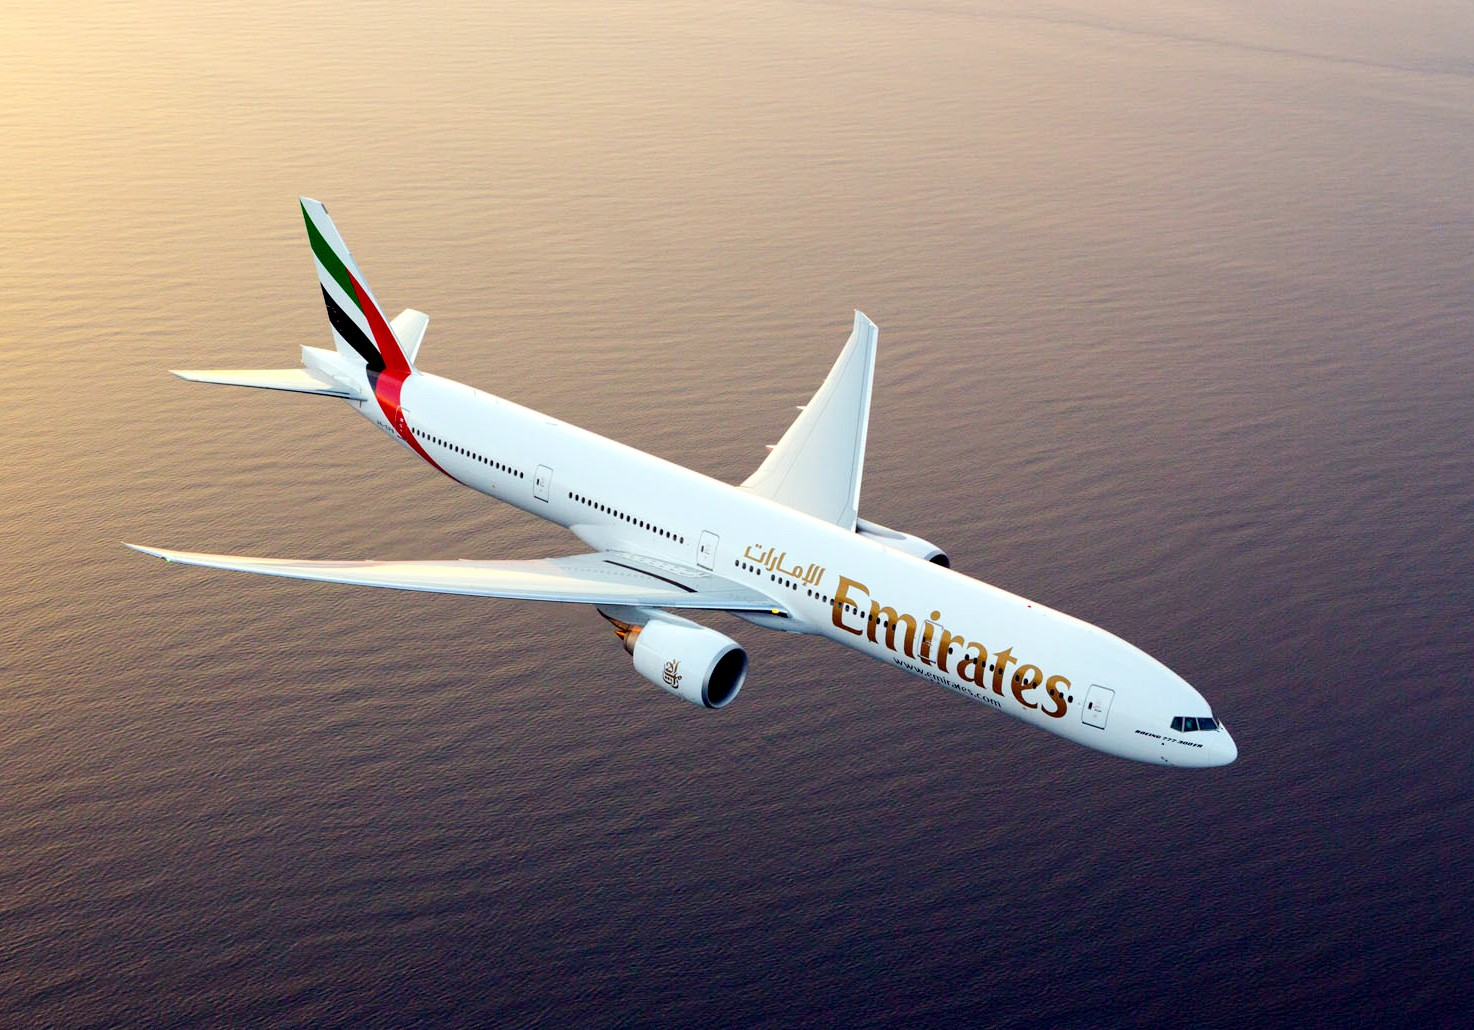 emiratesboeing777-300er1-478063